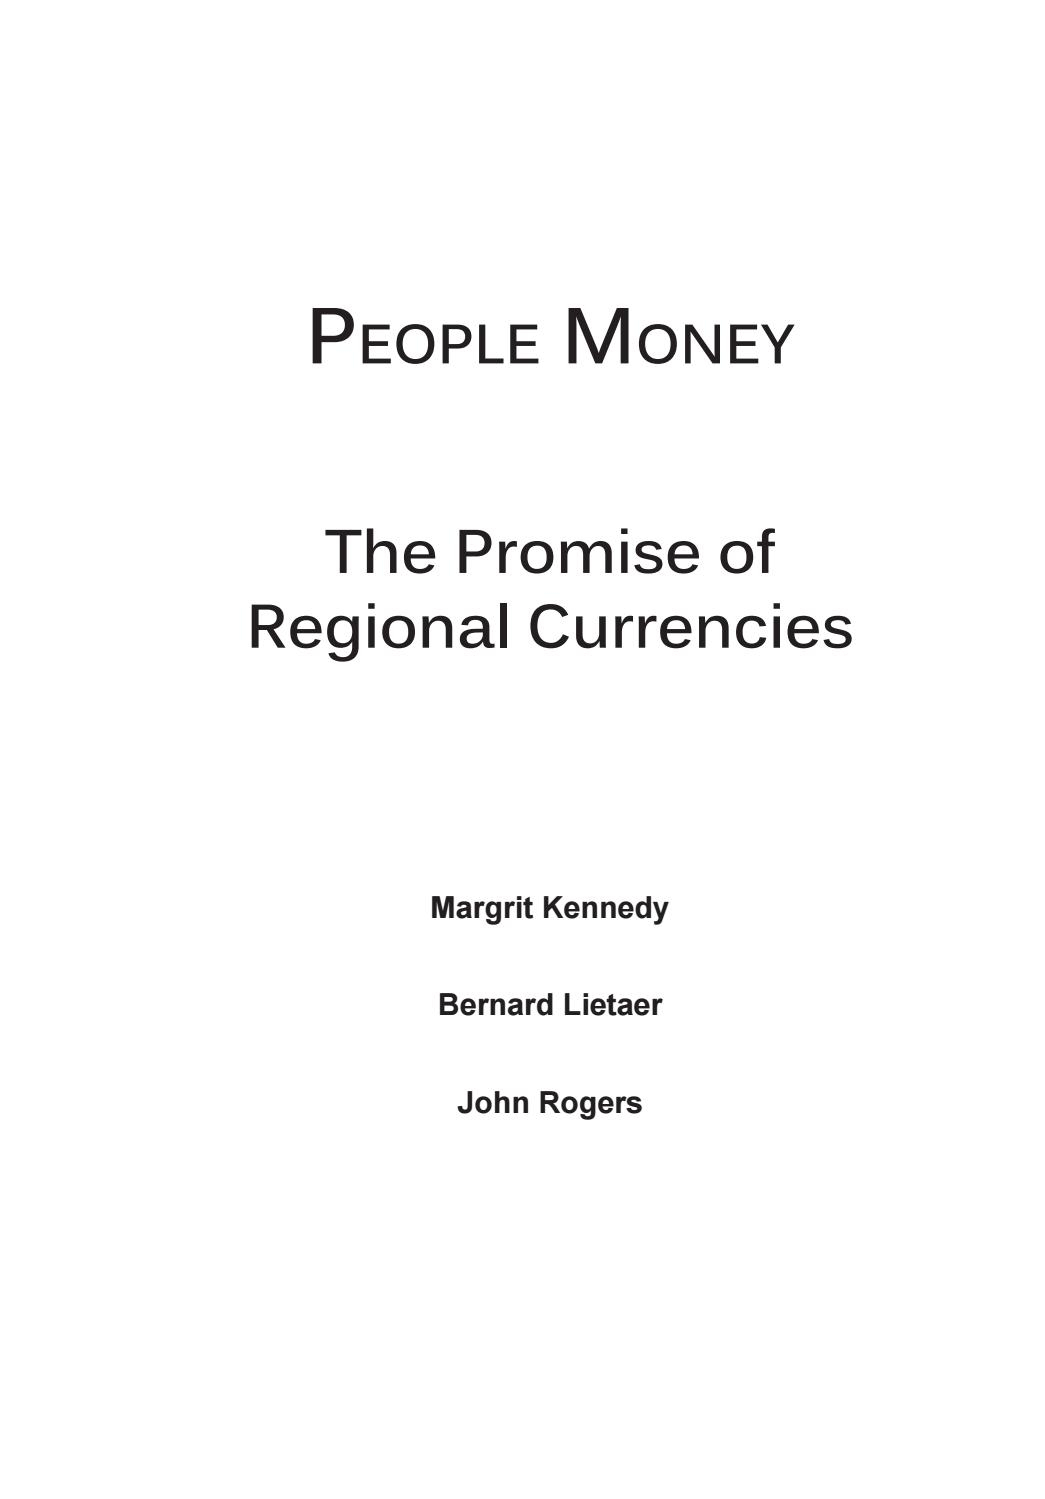 People Money - The Promise Of Regional Currencies